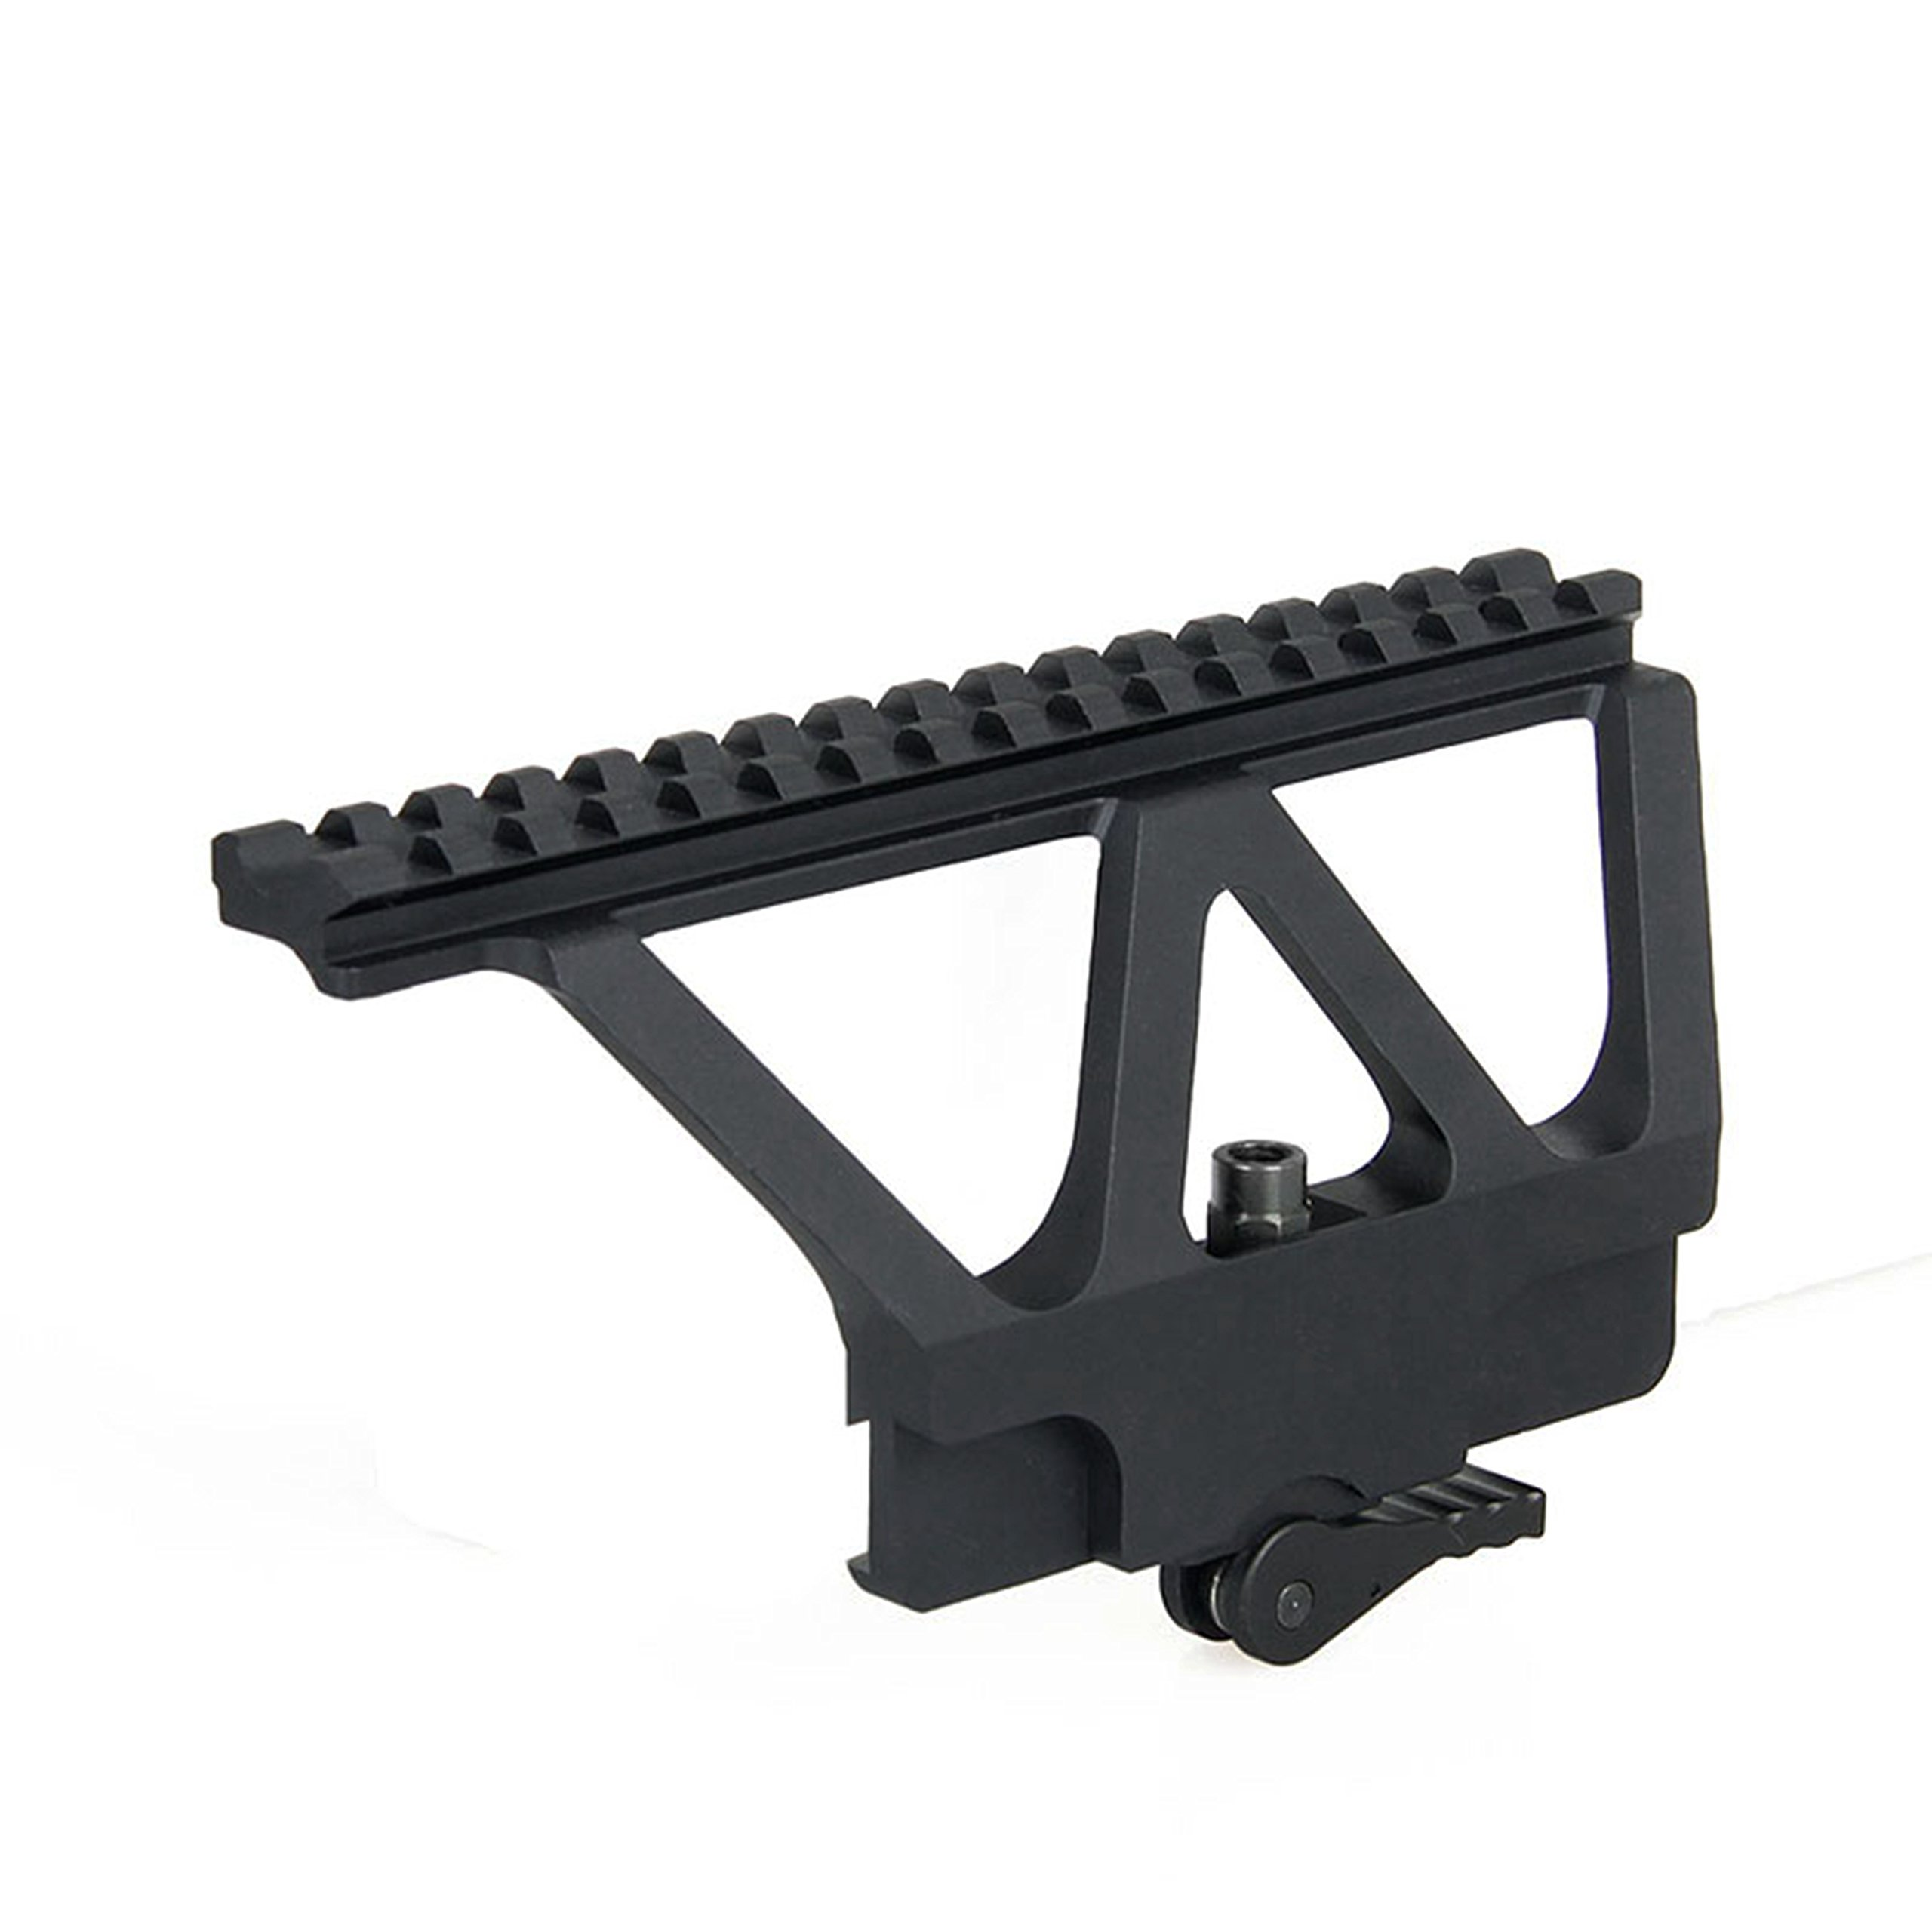 Tacksport Red Dot Scope Mount Picatinny Weaver Scope Mount for Red Dot Sight Black by wipboten